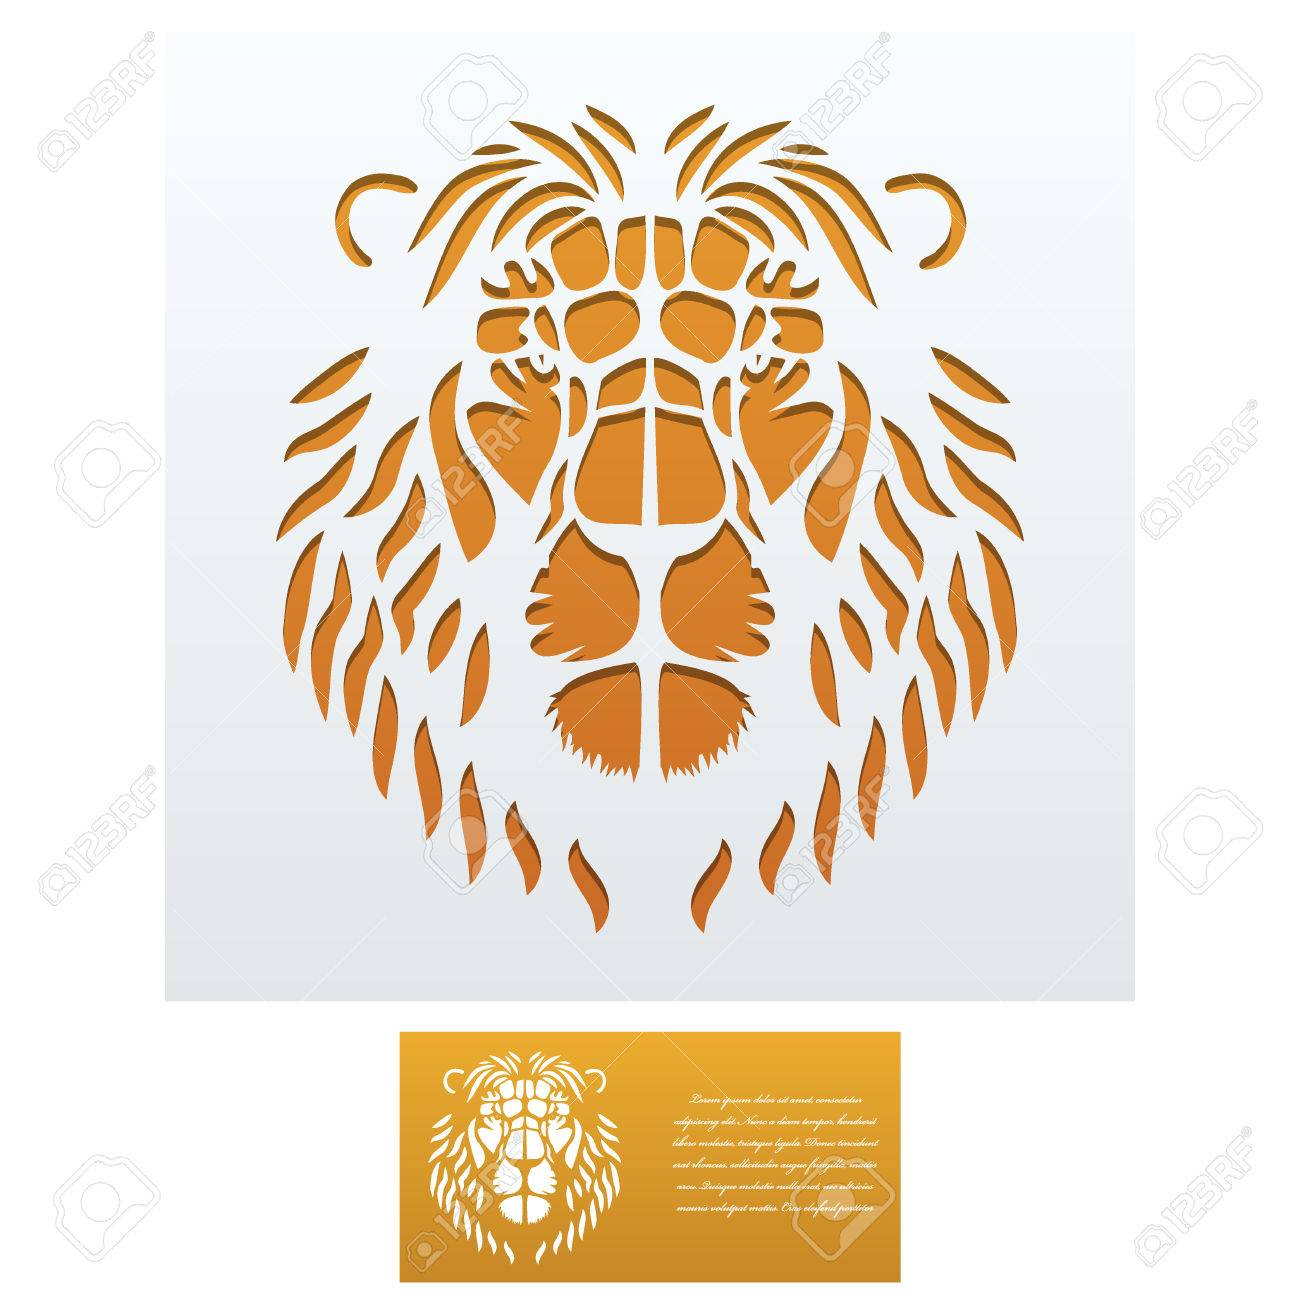 Envelope template with lion head for laser cutting square format envelope template with lion head for laser cutting square format die of wedding and stopboris Gallery